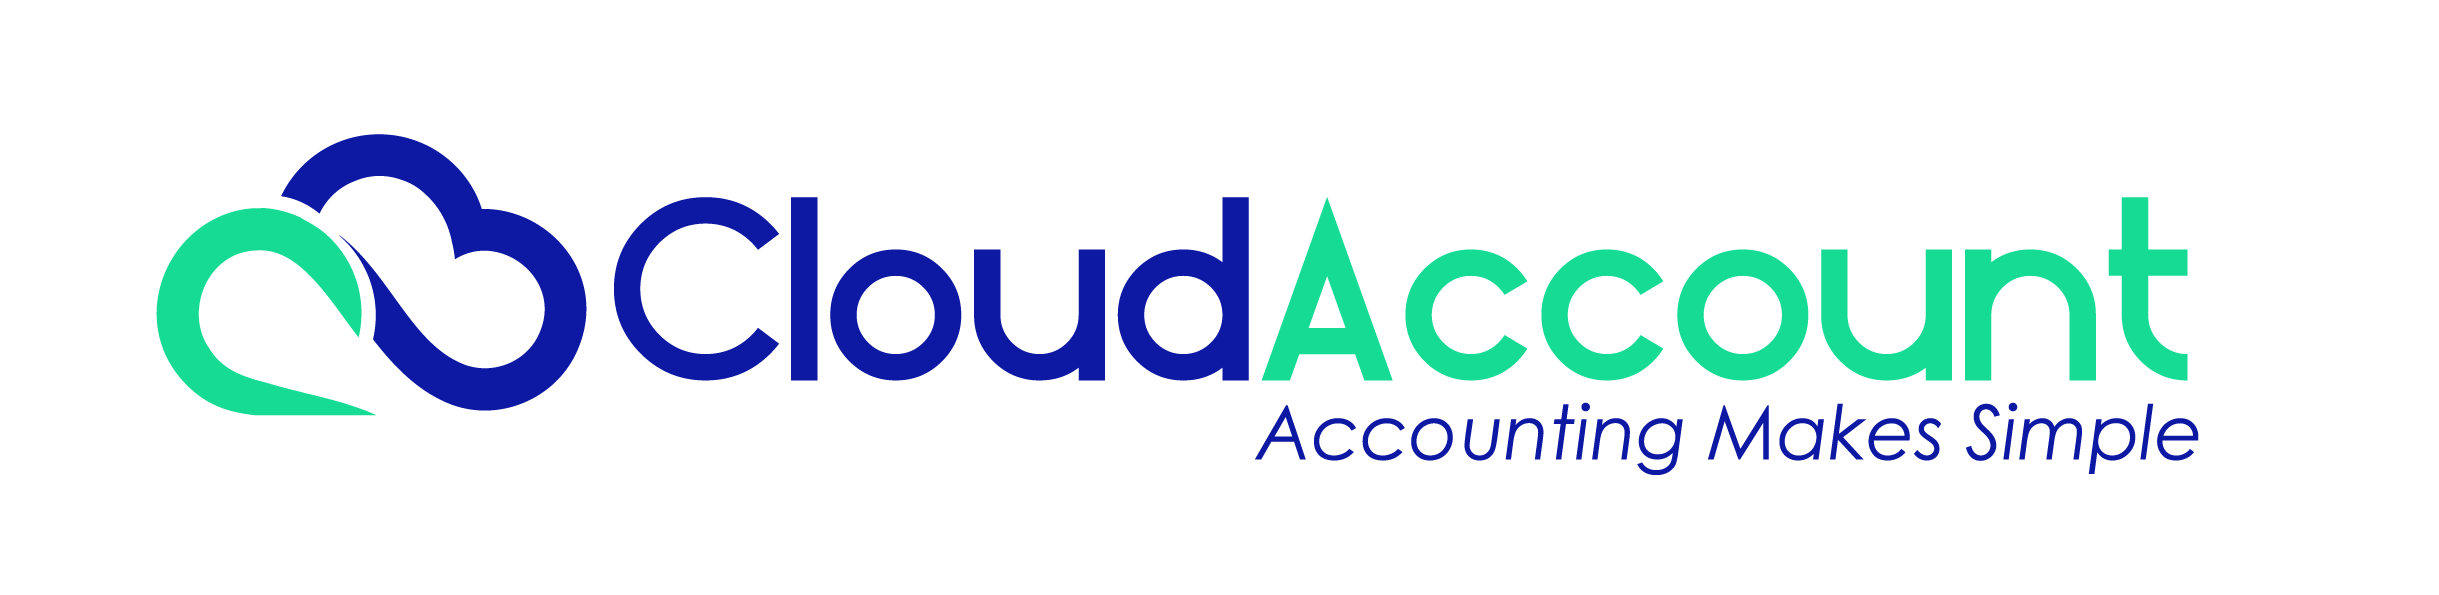 Cloud Account Pte. Ltd.